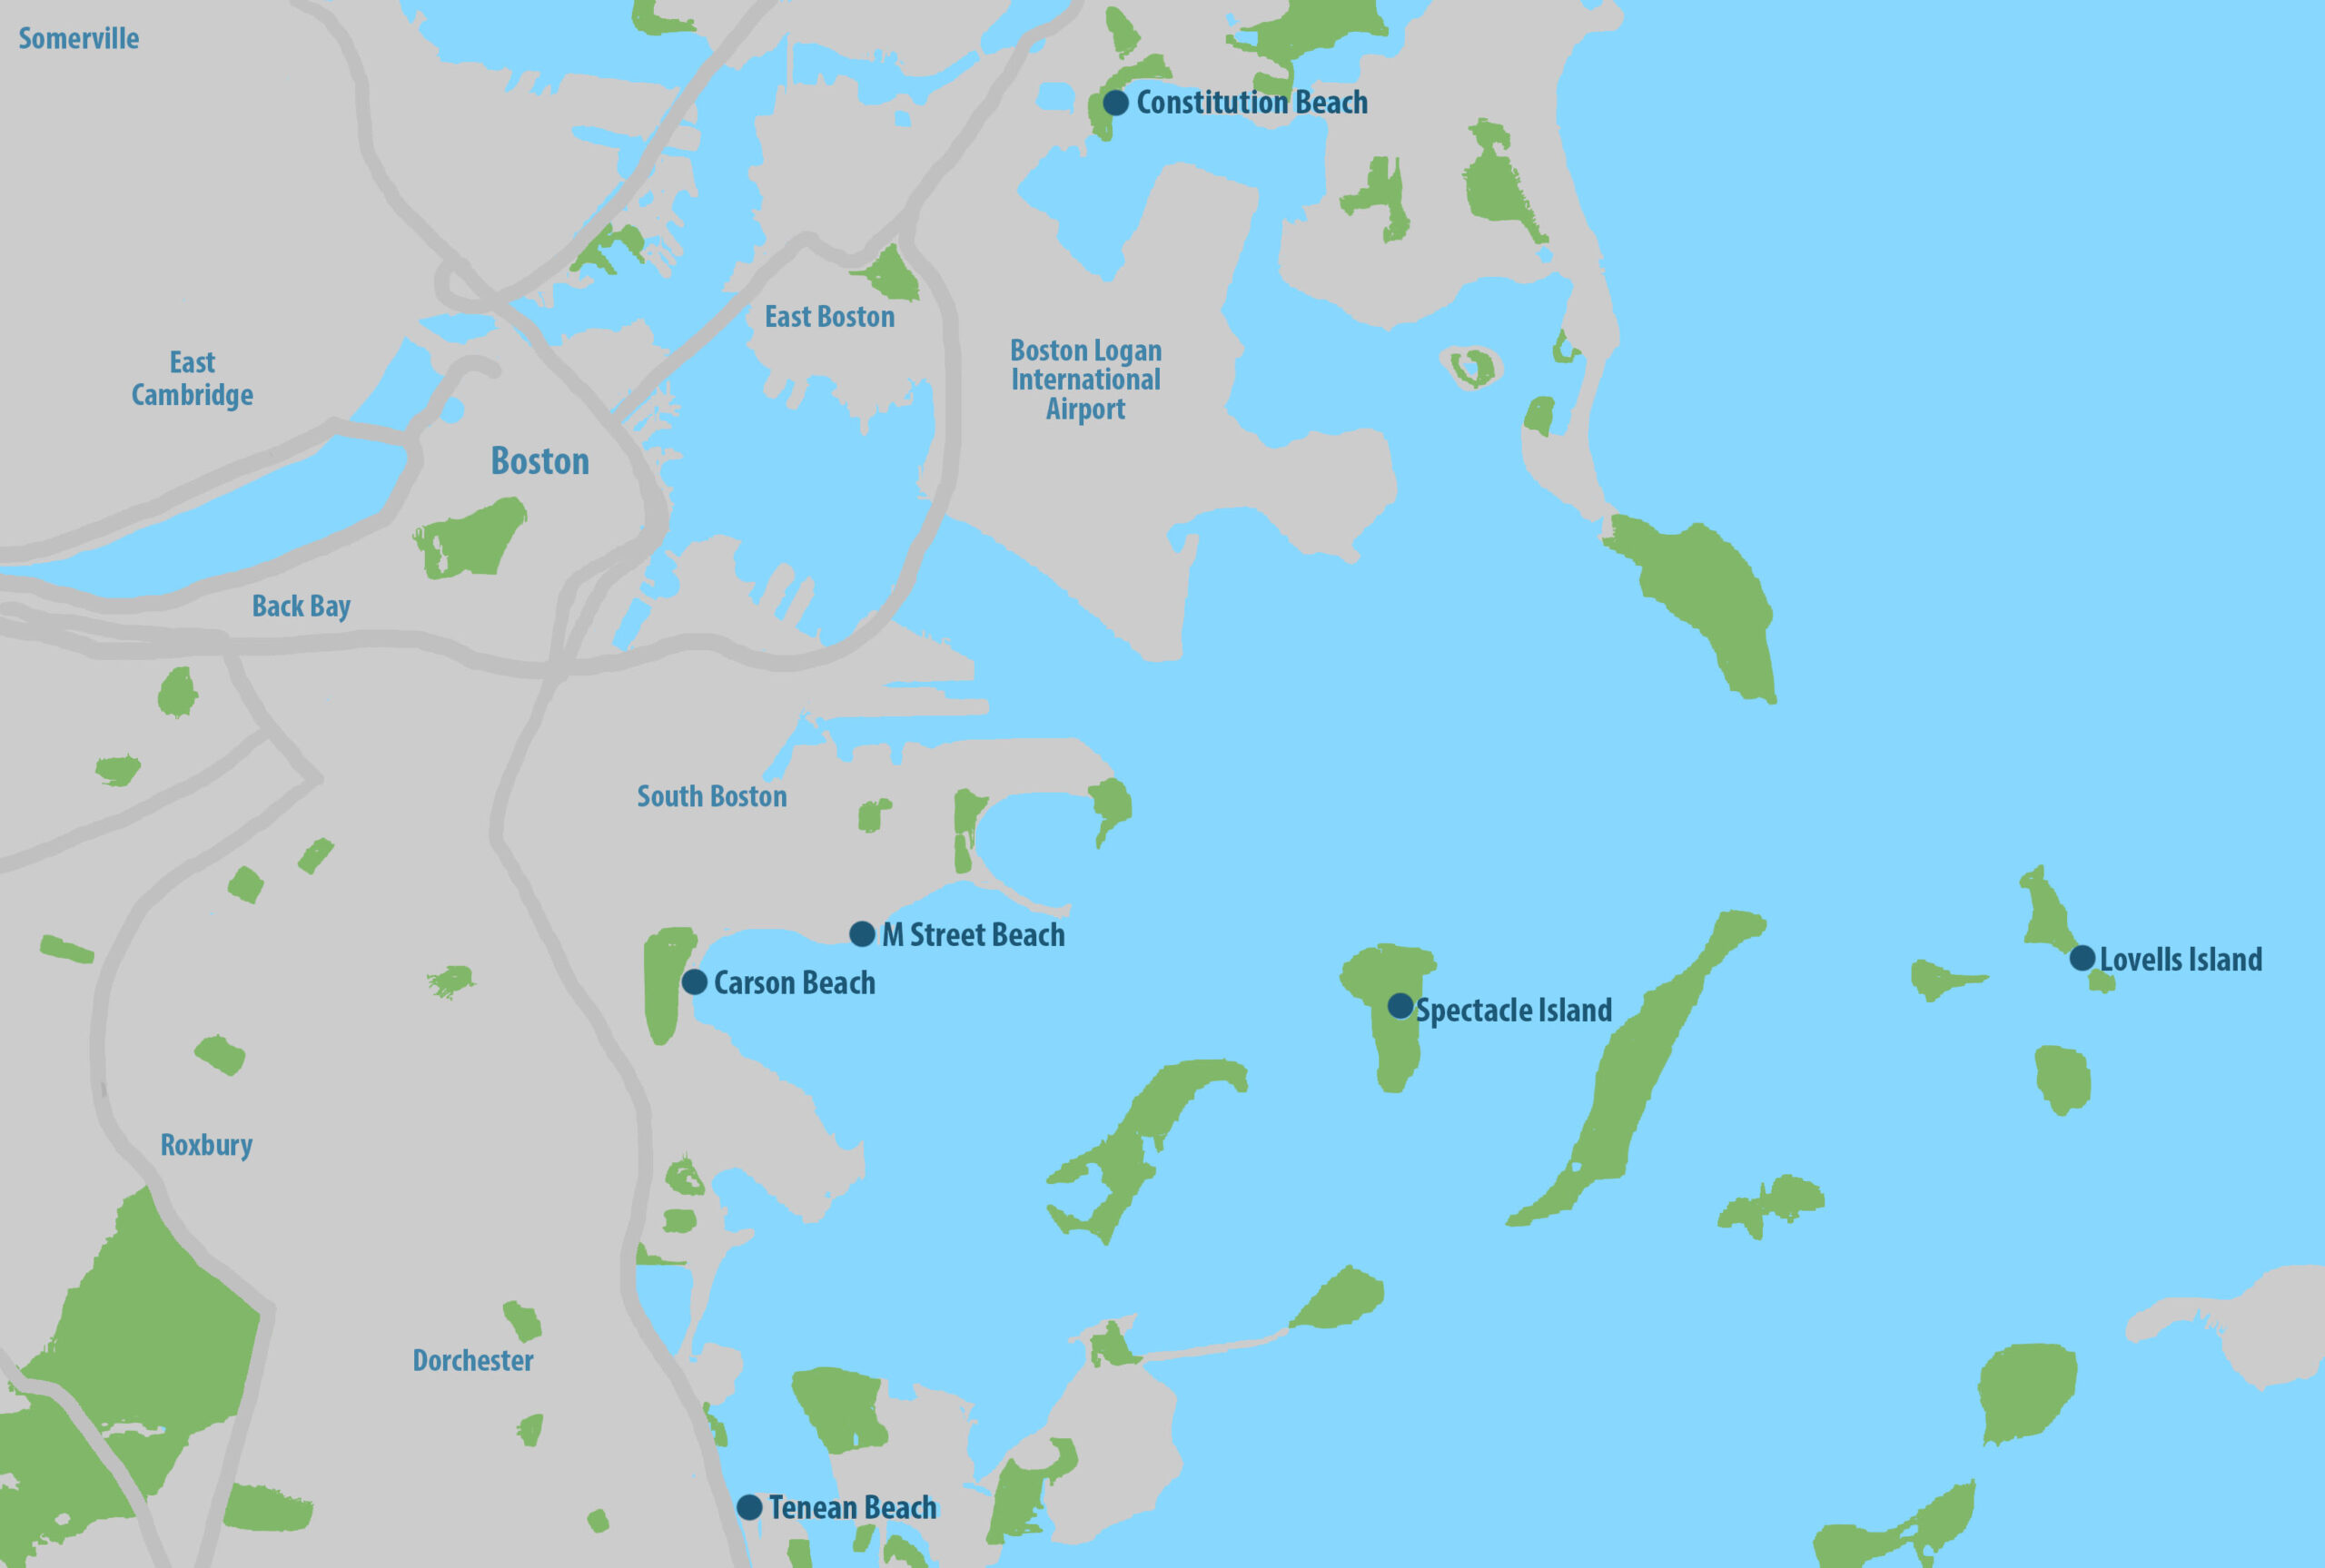 Image of a map of the beaches in the Boston area